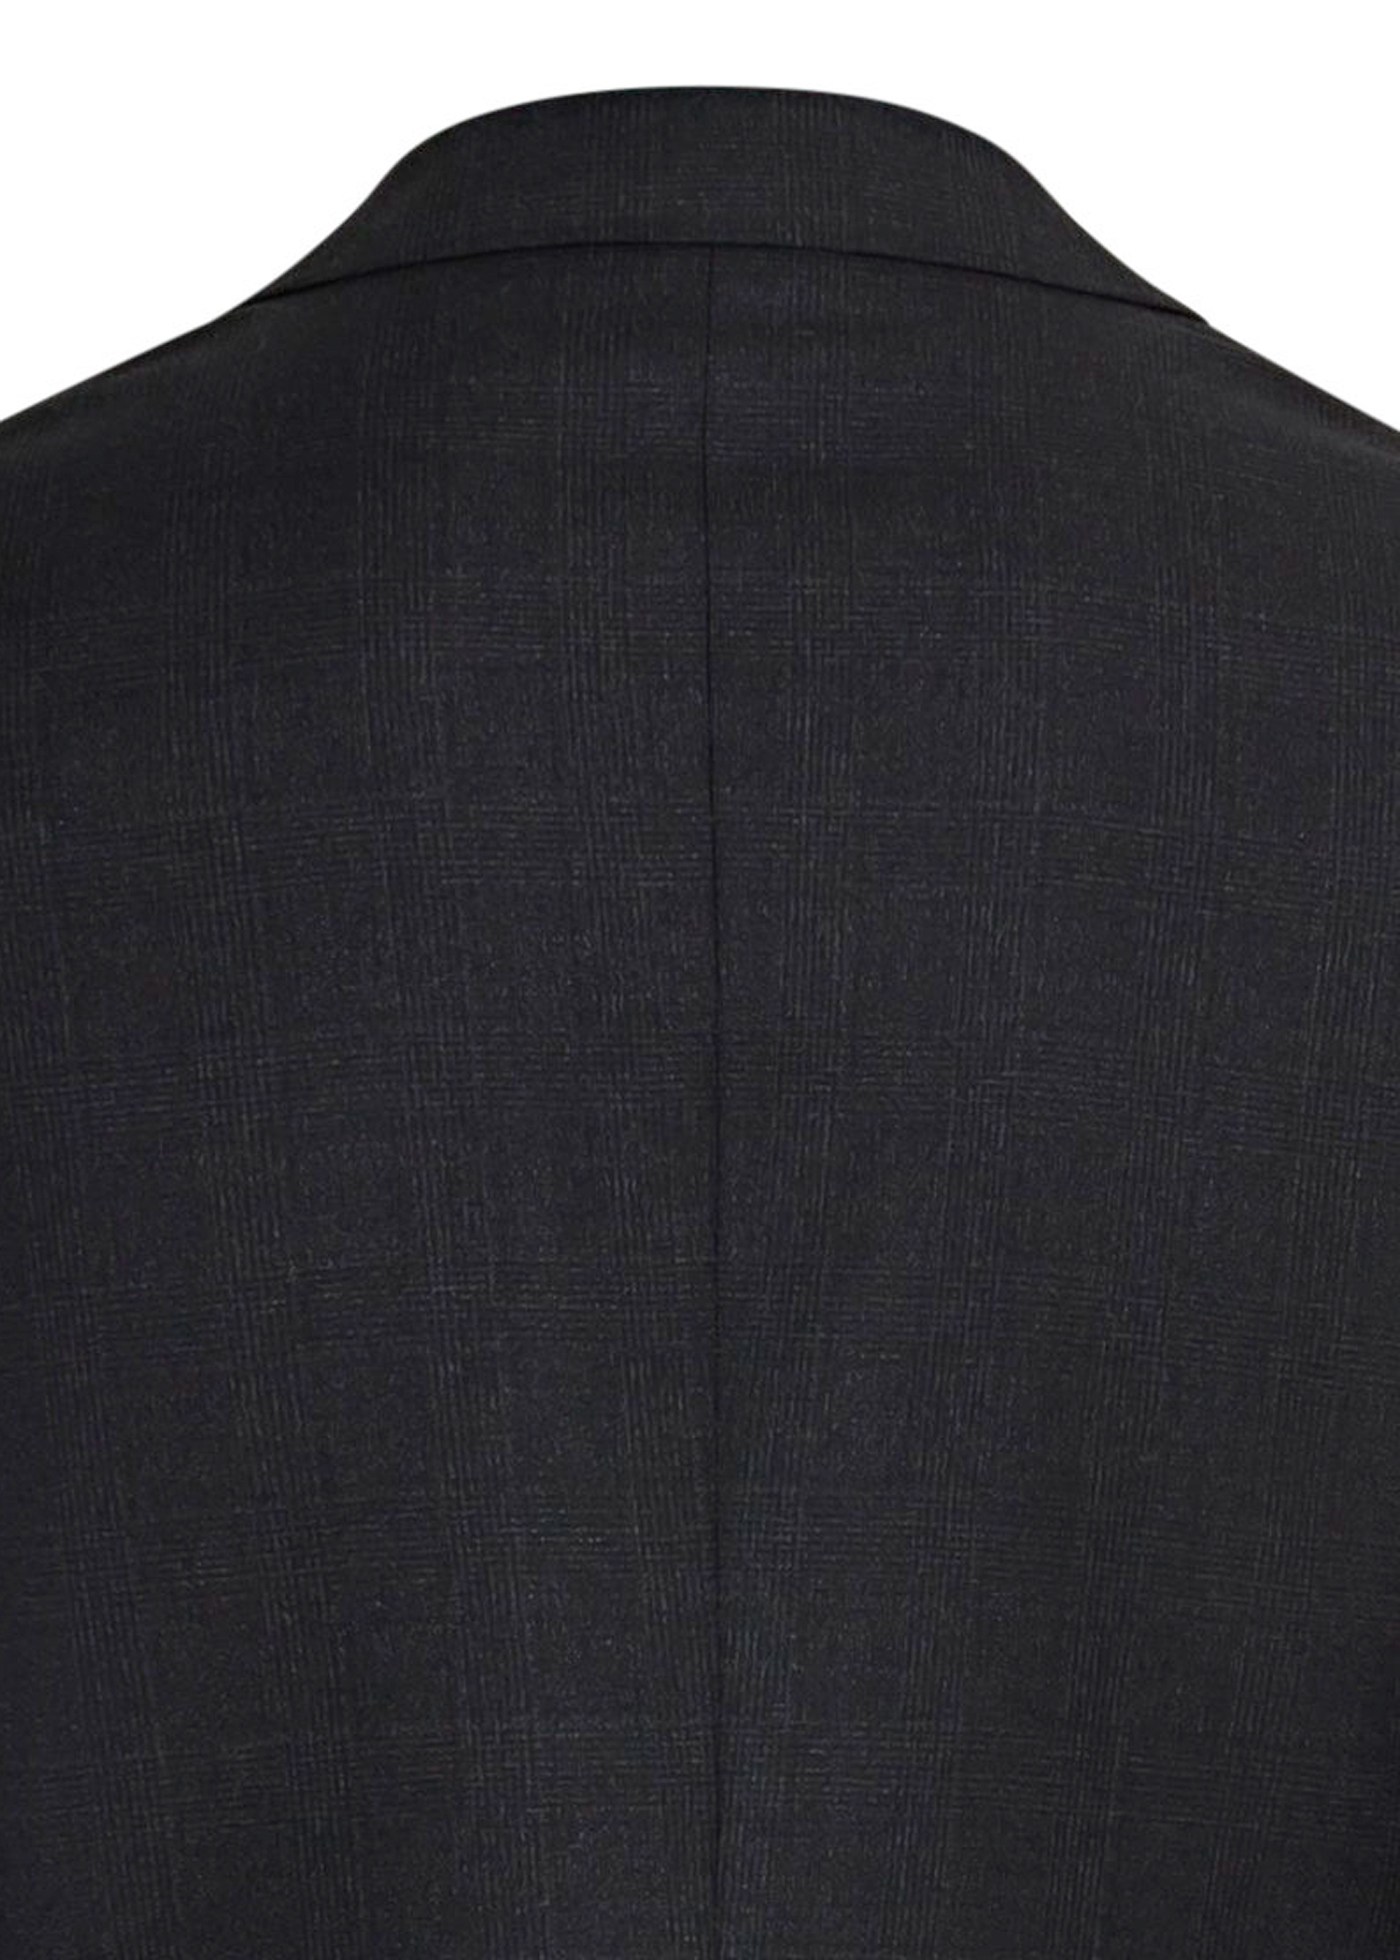 110'S WOOL SUIT image number 3